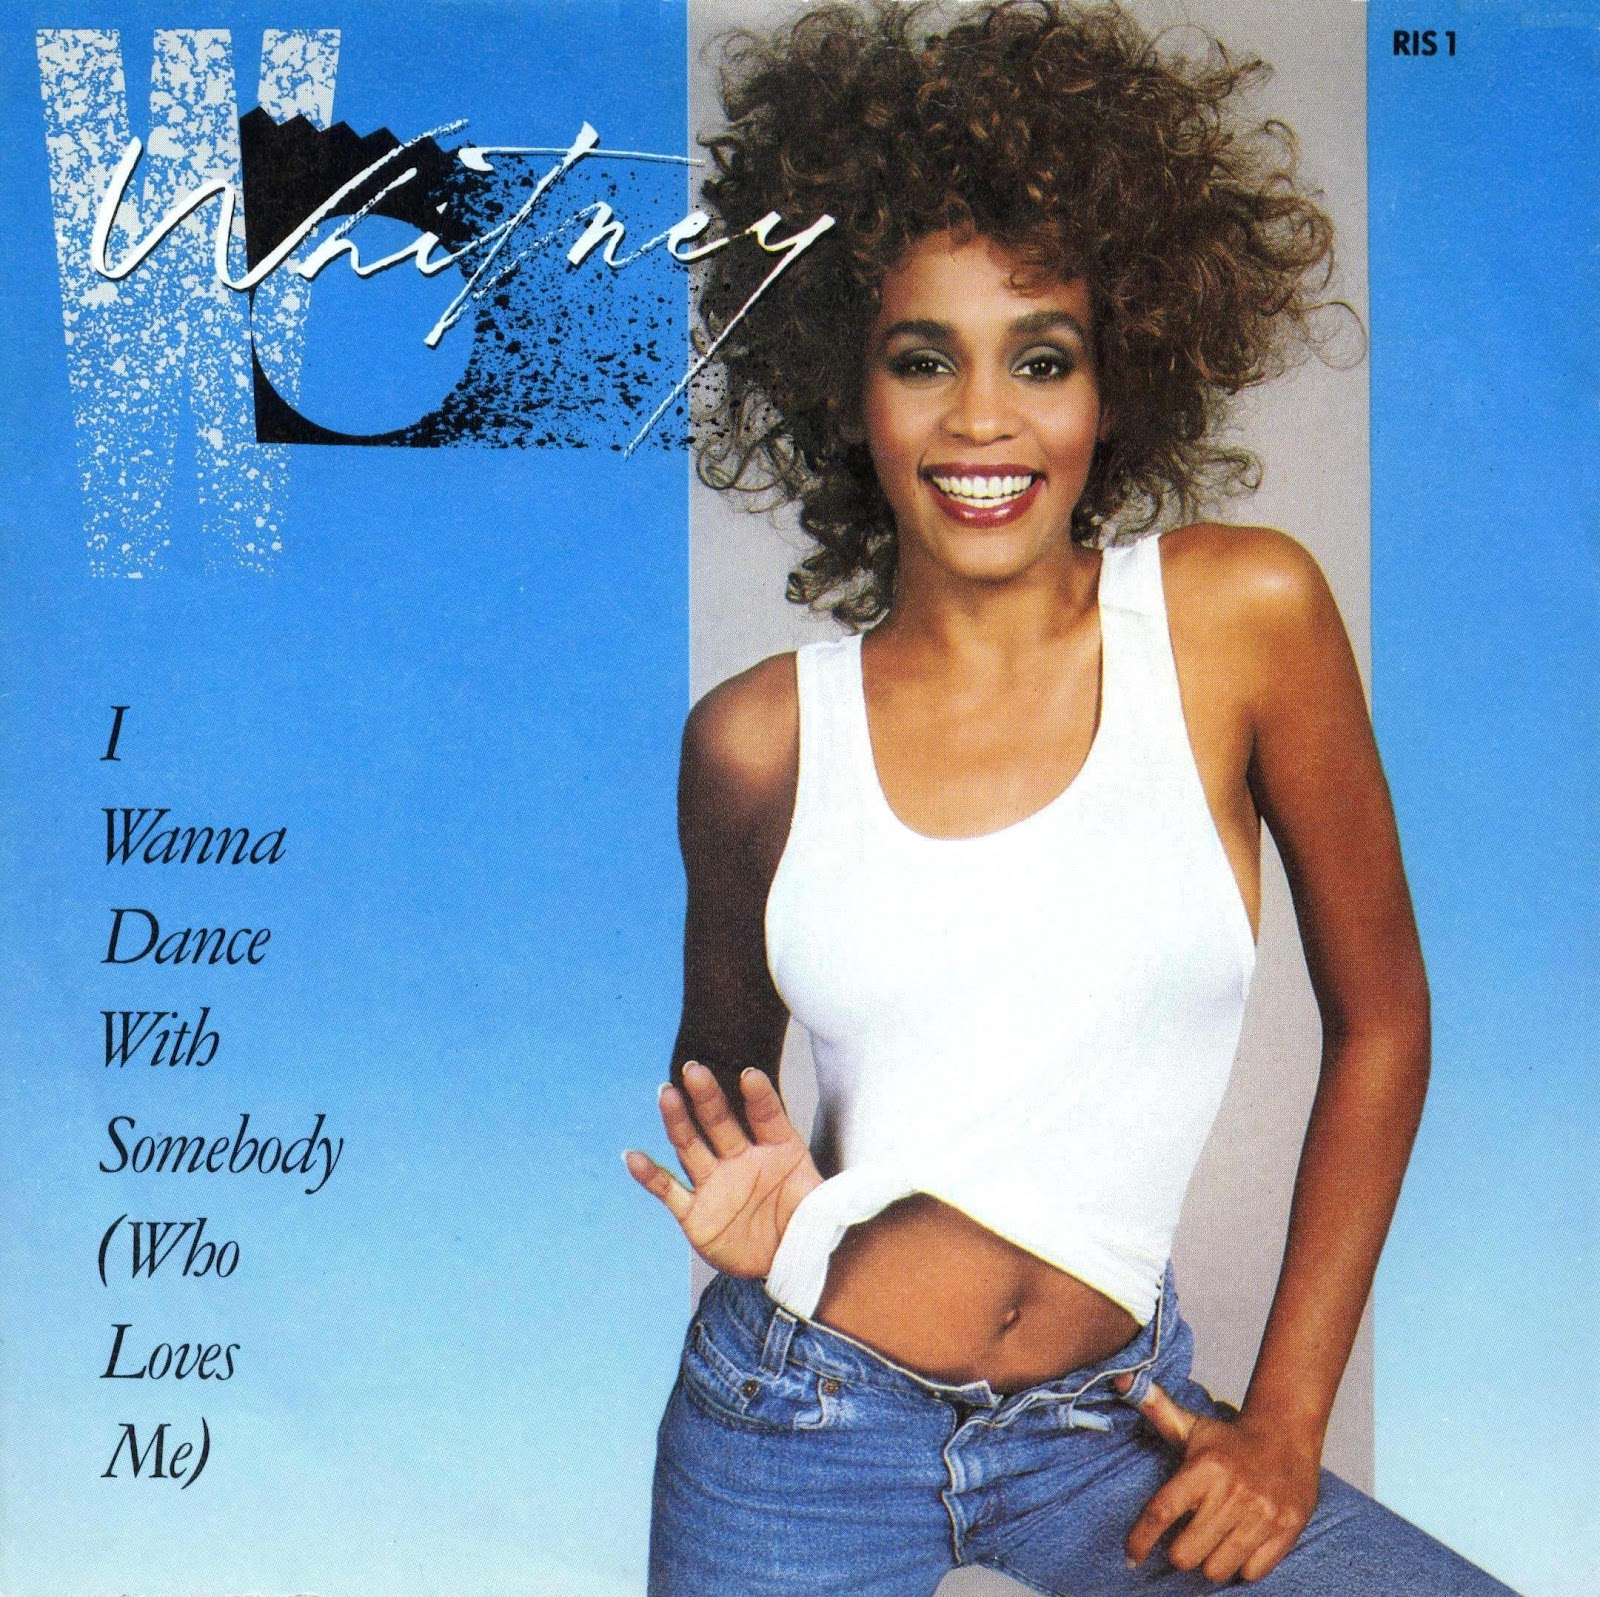 http://4.bp.blogspot.com/-ZJo_uejniuQ/TzlzY3LP4cI/AAAAAAAADbA/AcXvJxd_Tcc/s1600/I+Wanna+Dance+With+Somebody-Whitney+Houston.jpg